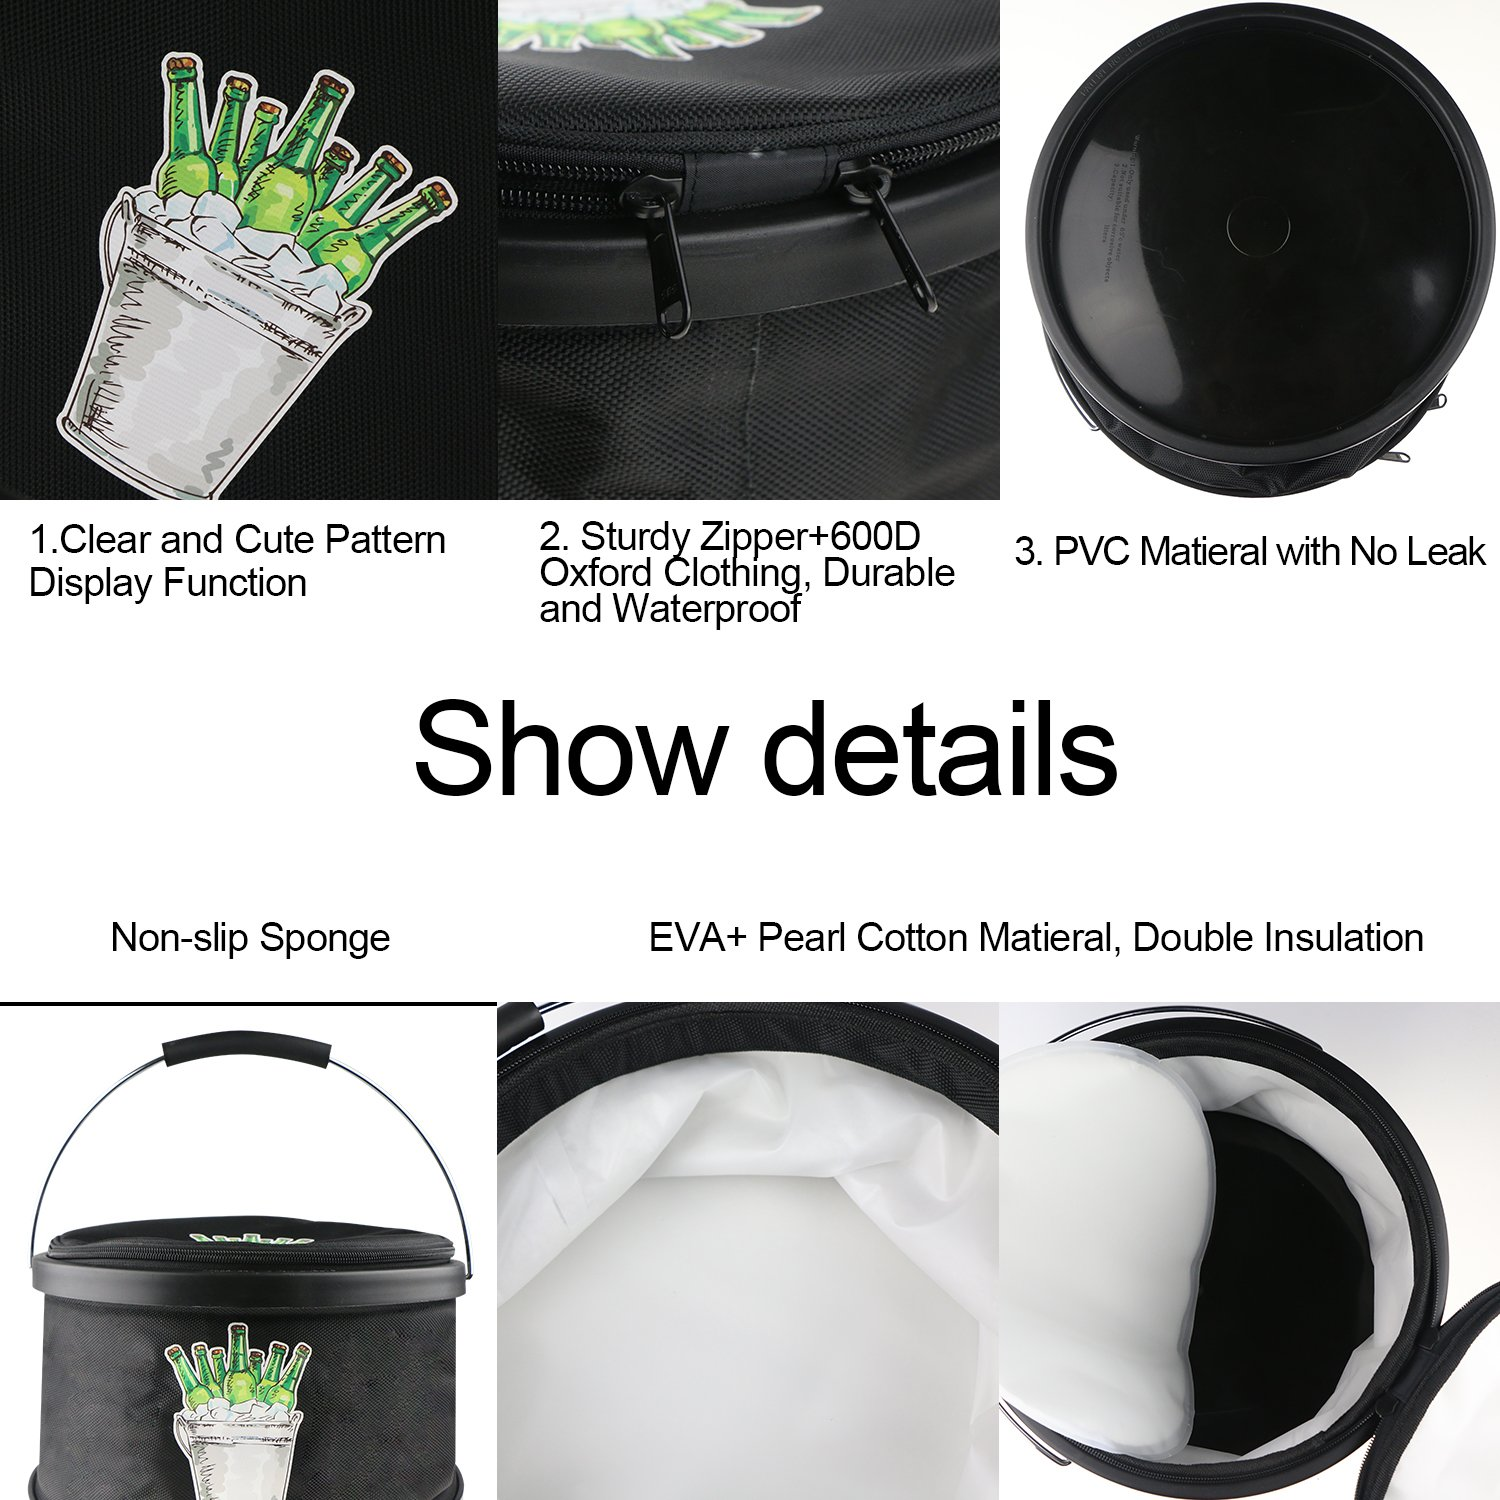 Collapsible Ice Bucket Drinks Lunch Cooler, LC-dolida Portable Folding Camping Beverage Beer Can Cooler with Zipper Double Insulated Bucket Bag for Hiking, Picnic, Travel Black